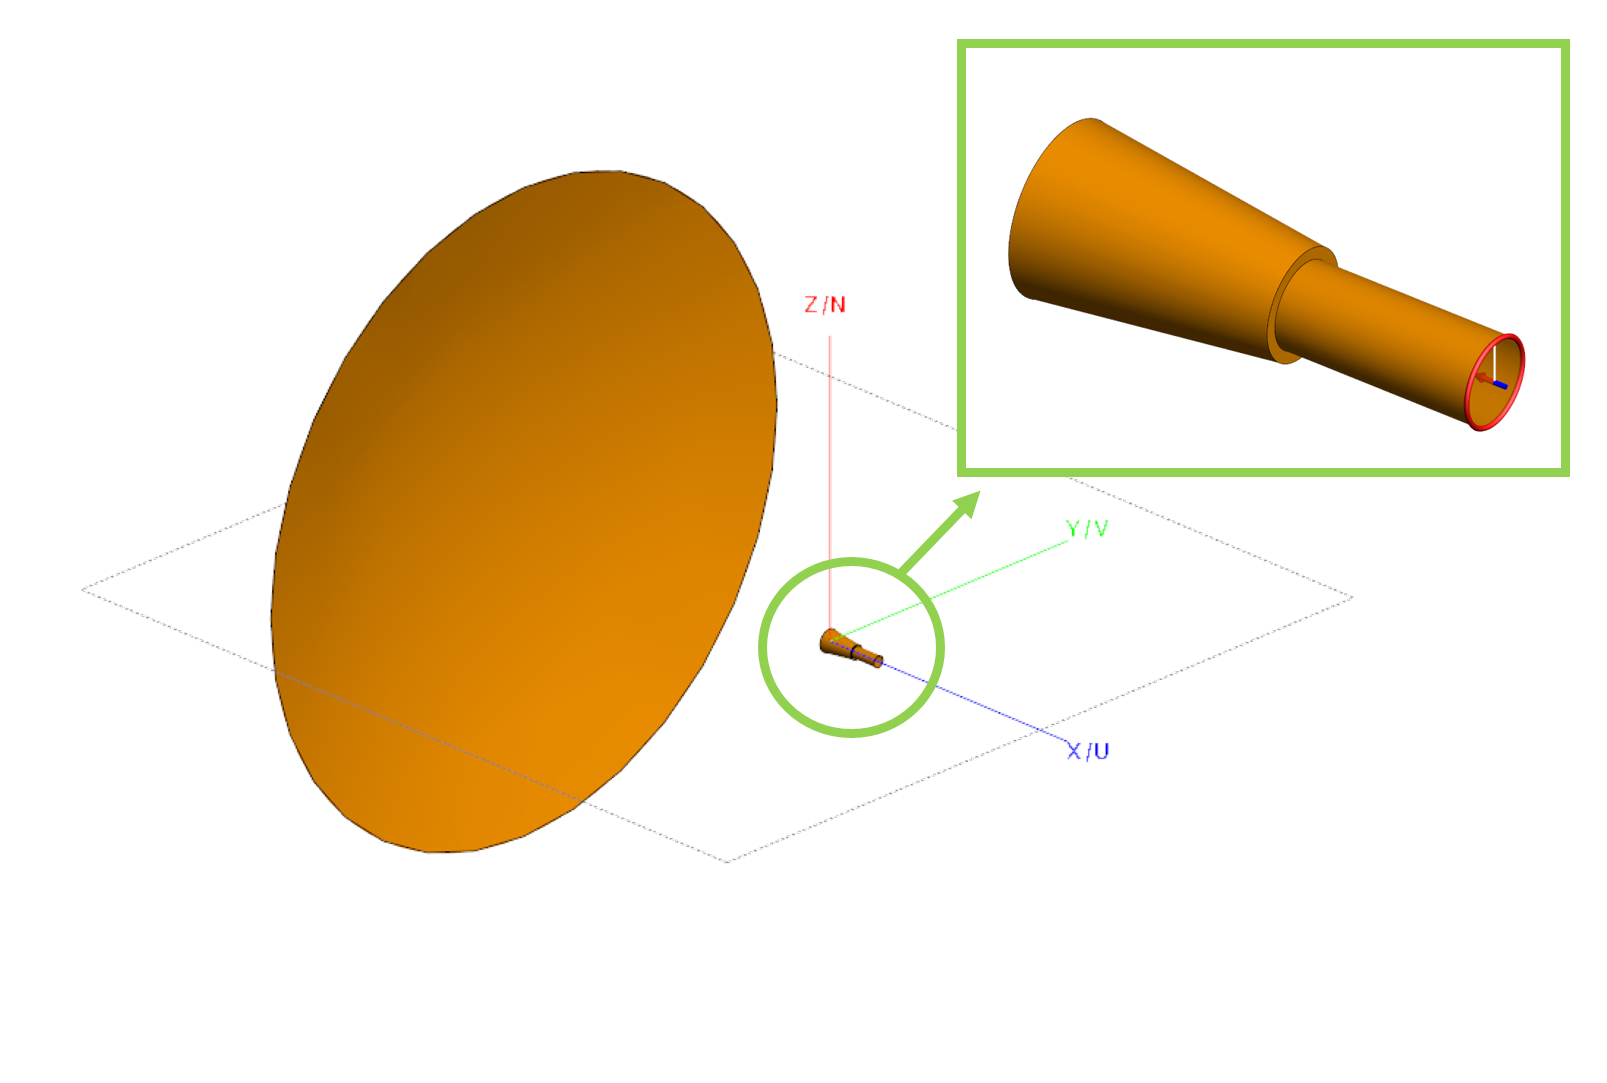 Reflector Antenna with Circular Horn Feed — Analyzed with Ray Launching Geometrical Optics (RL-GO)